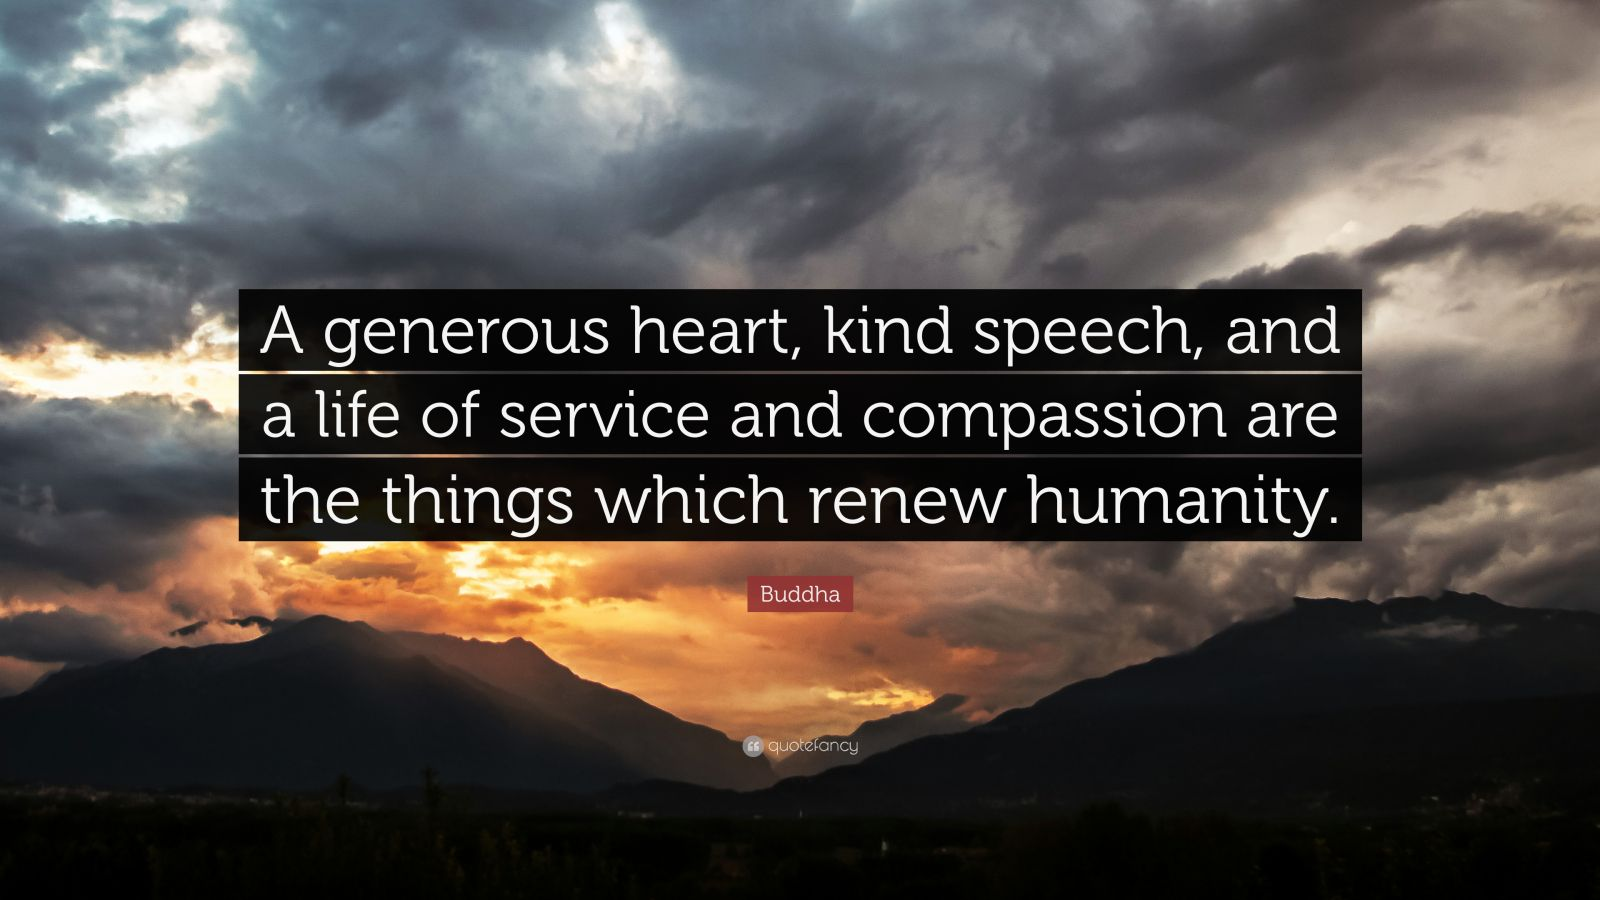 Yoga Quotes Wallpaper Buddha Quote A Generous Heart Kind Speech And A Life